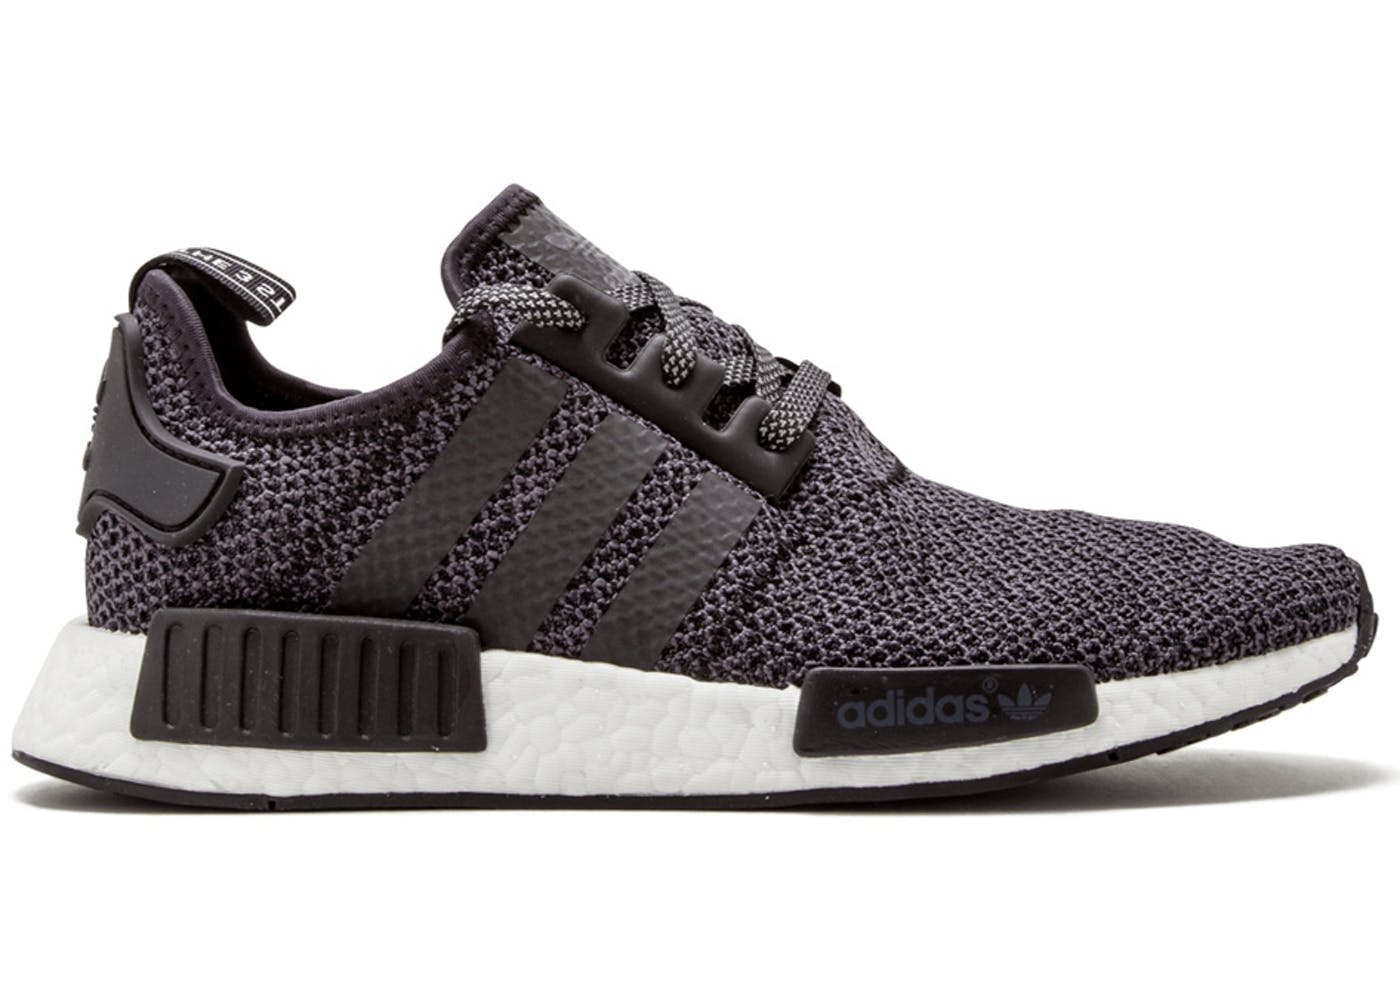 adidas NMD R1 Primeknit Glitch Camo Grey BY1911